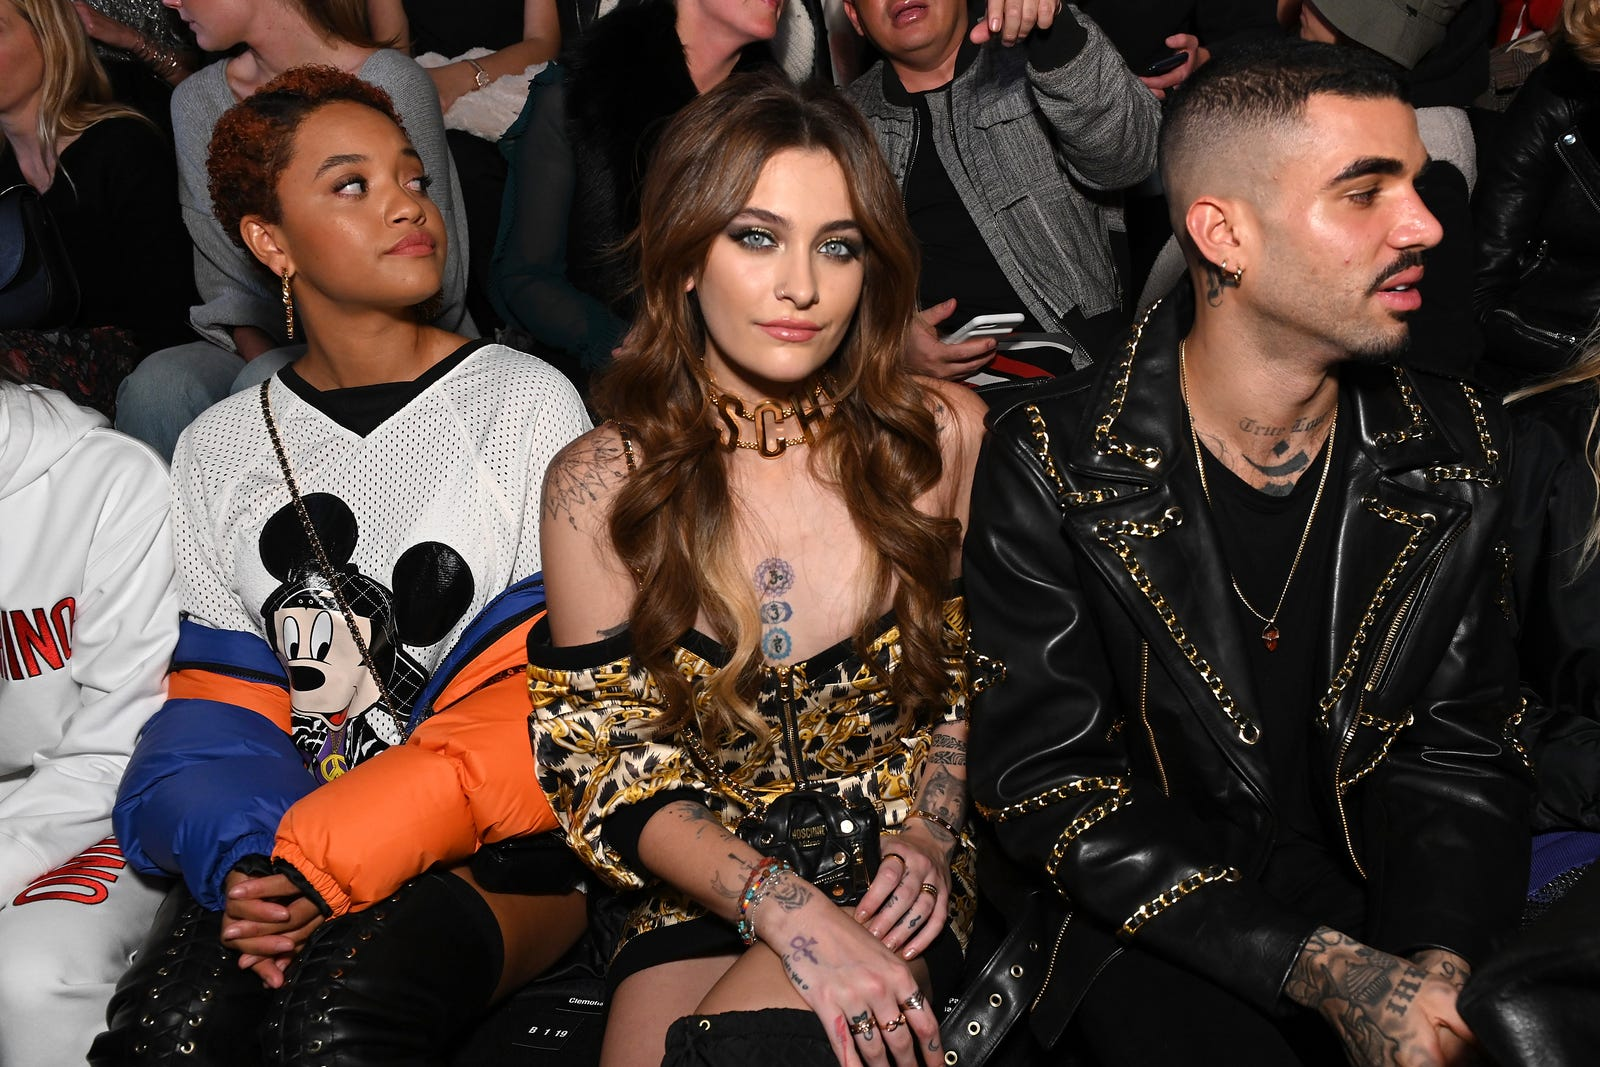 (l-r) Kiersey Clemons, Paris Jackson and Miles Ritchie attend the Moschino x H&M - Front Row at Pier 36 on October 24, 2018, in New York City.